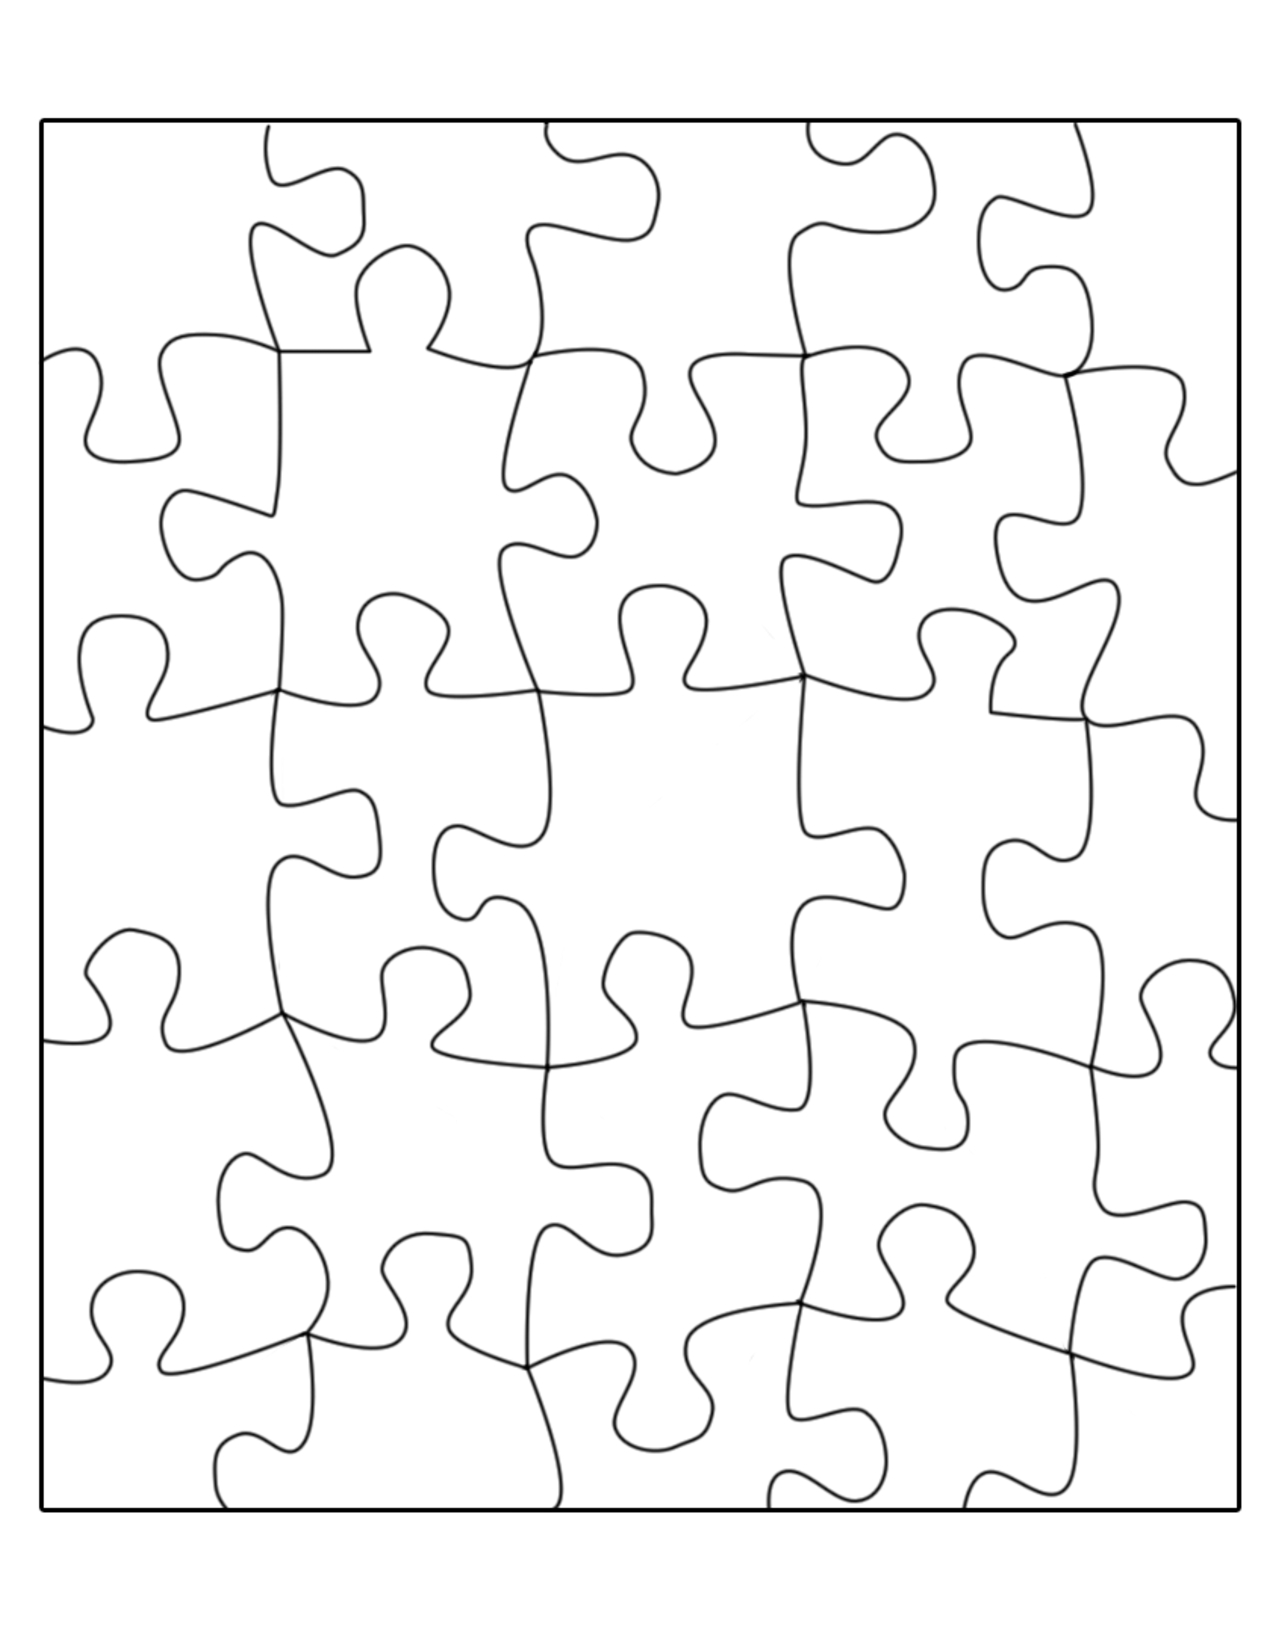 Free Puzzle Template, Download Free Clip Art, Free Clip Art On - Printable Puzzle Blank